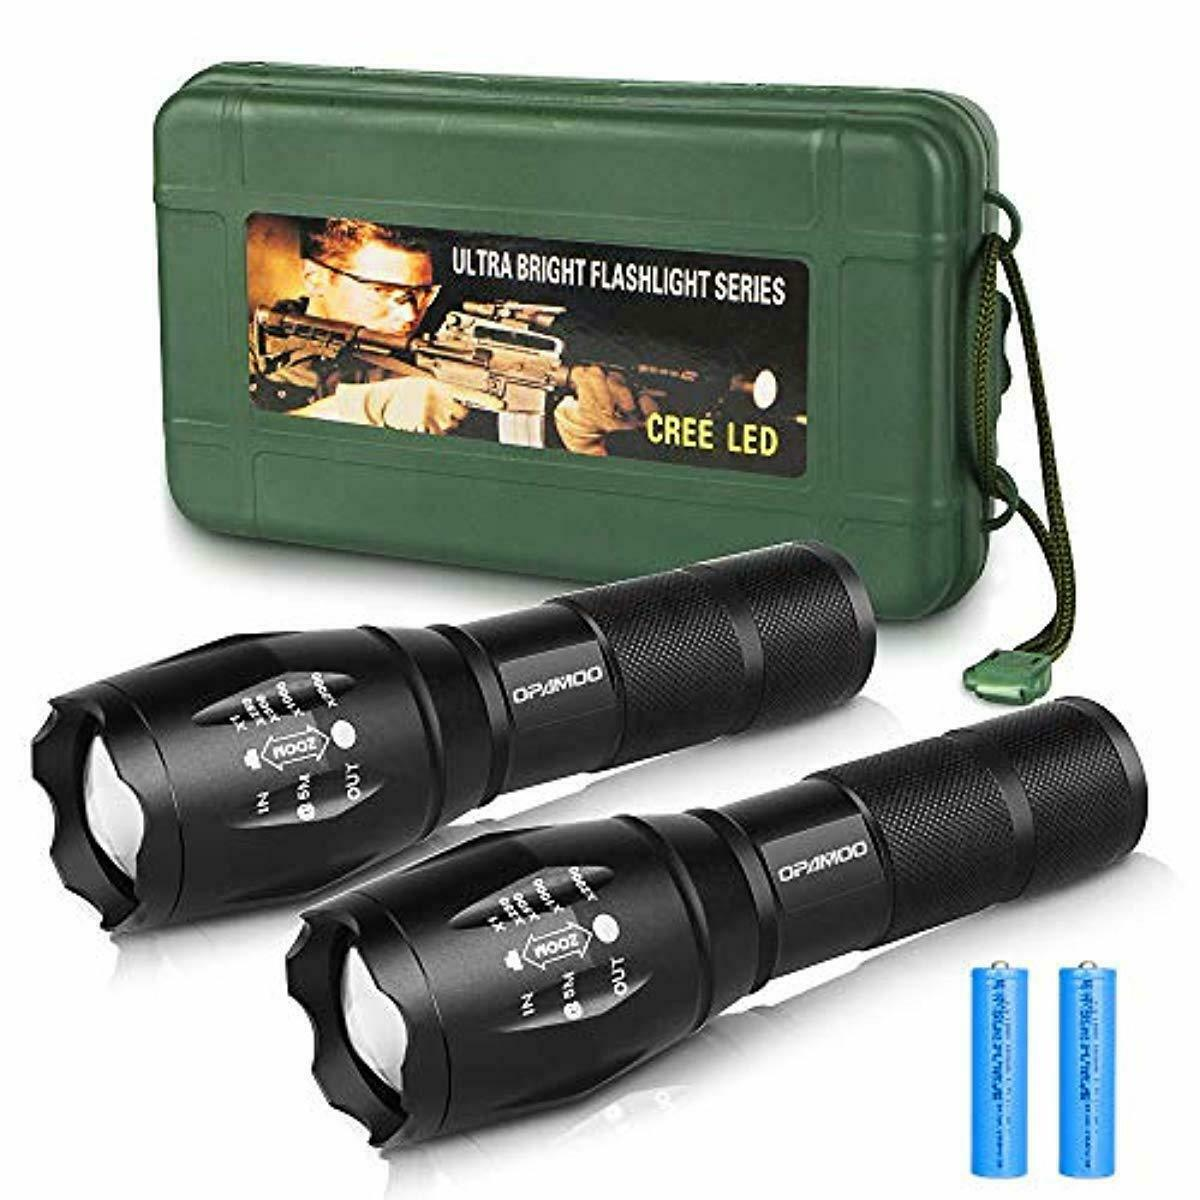 2PCS 900000LM High Power Zoom LED Flashlight Rechargeable Torch+Battery+Charger